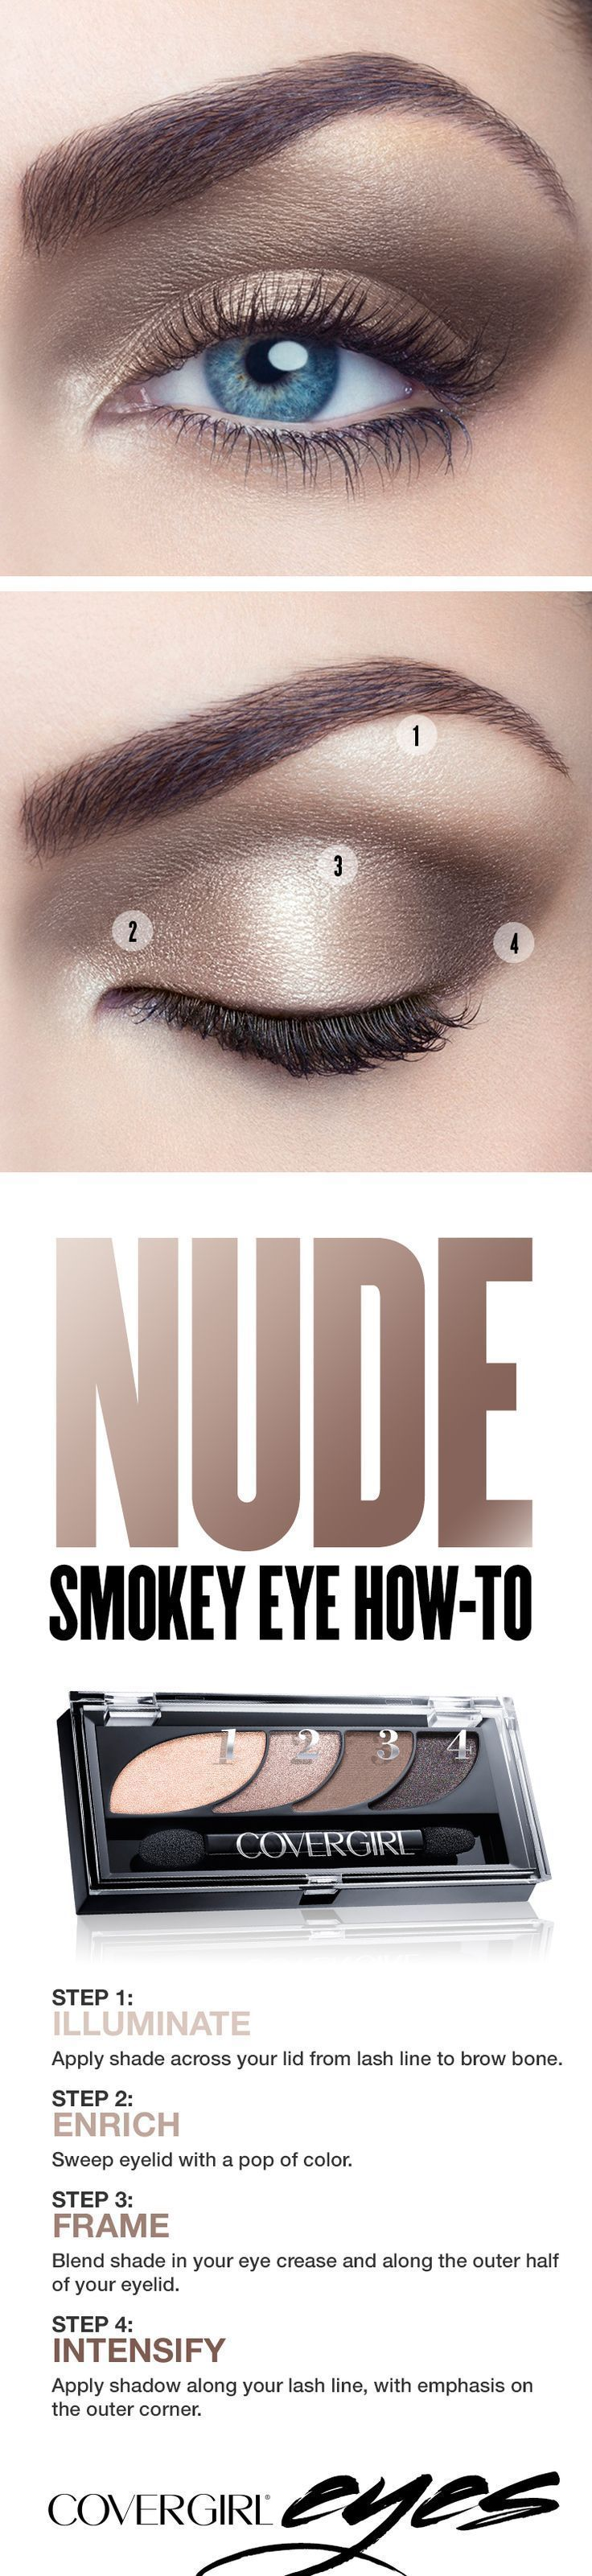 Try our simple step-by-step tutorial this holiday season for a natural nude smokey eye using COVERGIRL Eyeshadow Quads in Notice Me Nudes. The light, neutral tones in this palette make blue eyes pop! Perfect for Christmas or New Year's Eve parties - pair with a glam red lip to complete the look. http://makeuplearning.com/an-impressive-gold-smoky-eye-makeup-tutorial-step-by-step-gold-smoky-eye